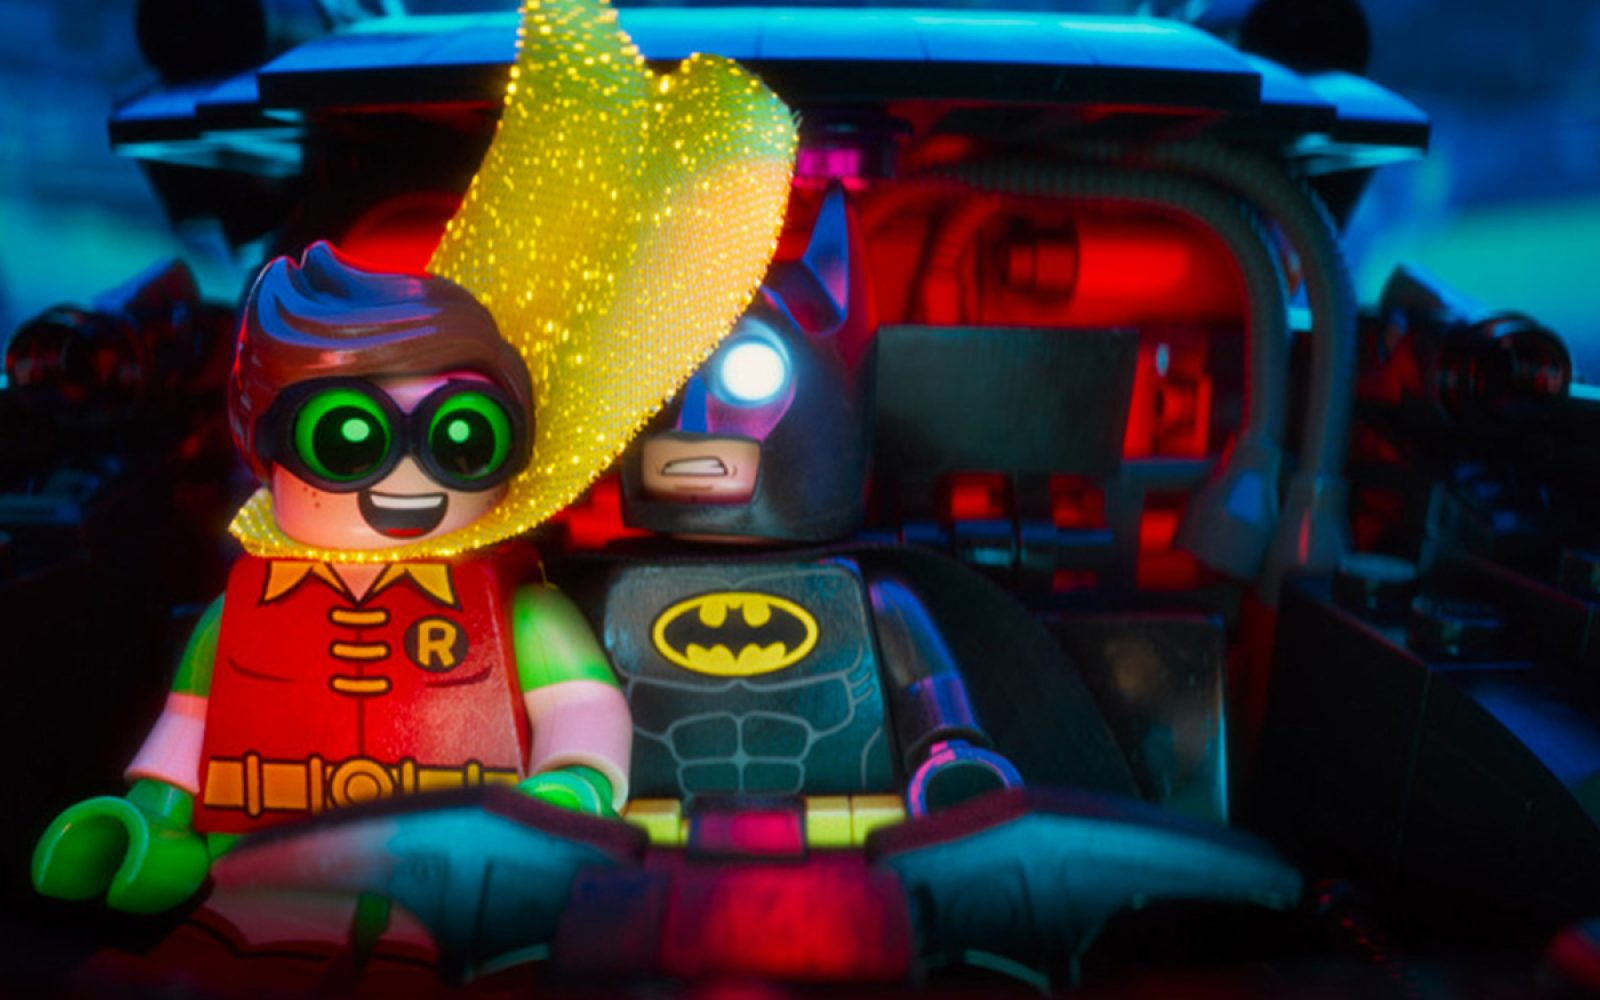 9to5toys Page 321 New Gear Reviews And Deals Tribe Headphones Batman Lego Teases Movie Inspired Sets With The Batmobile Joker Notorious Lowrider More